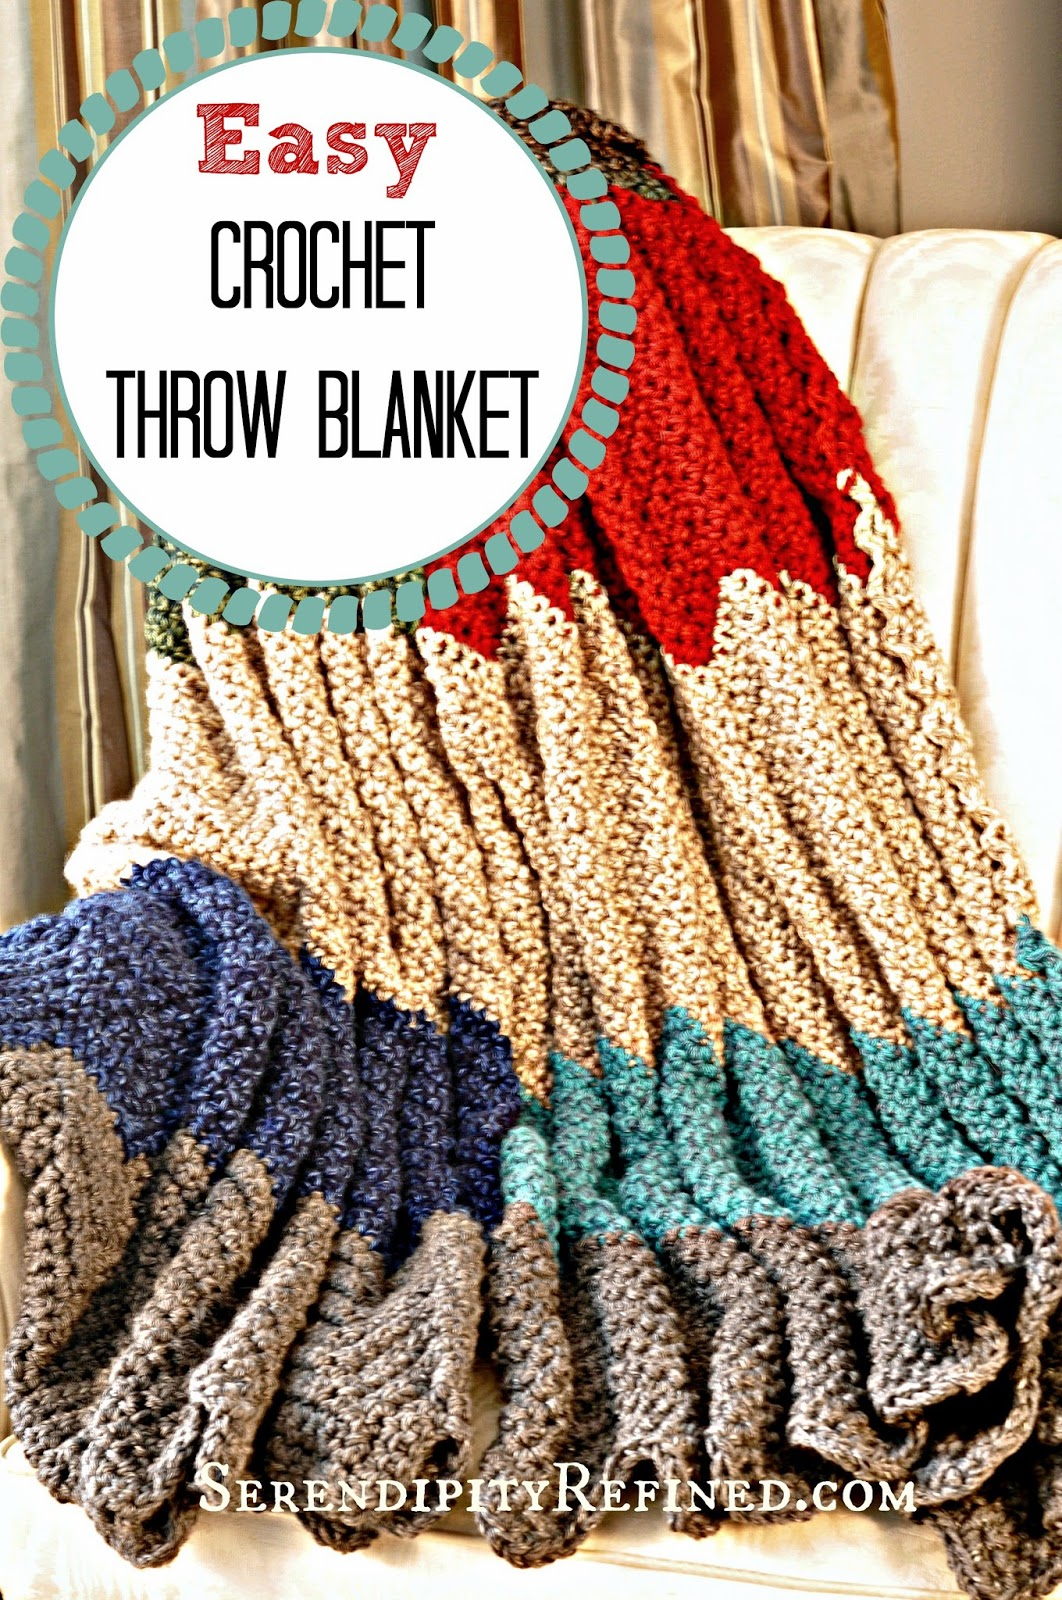 Serendipity Refined Blog: Easy Crochet Throw Blanket Pattern